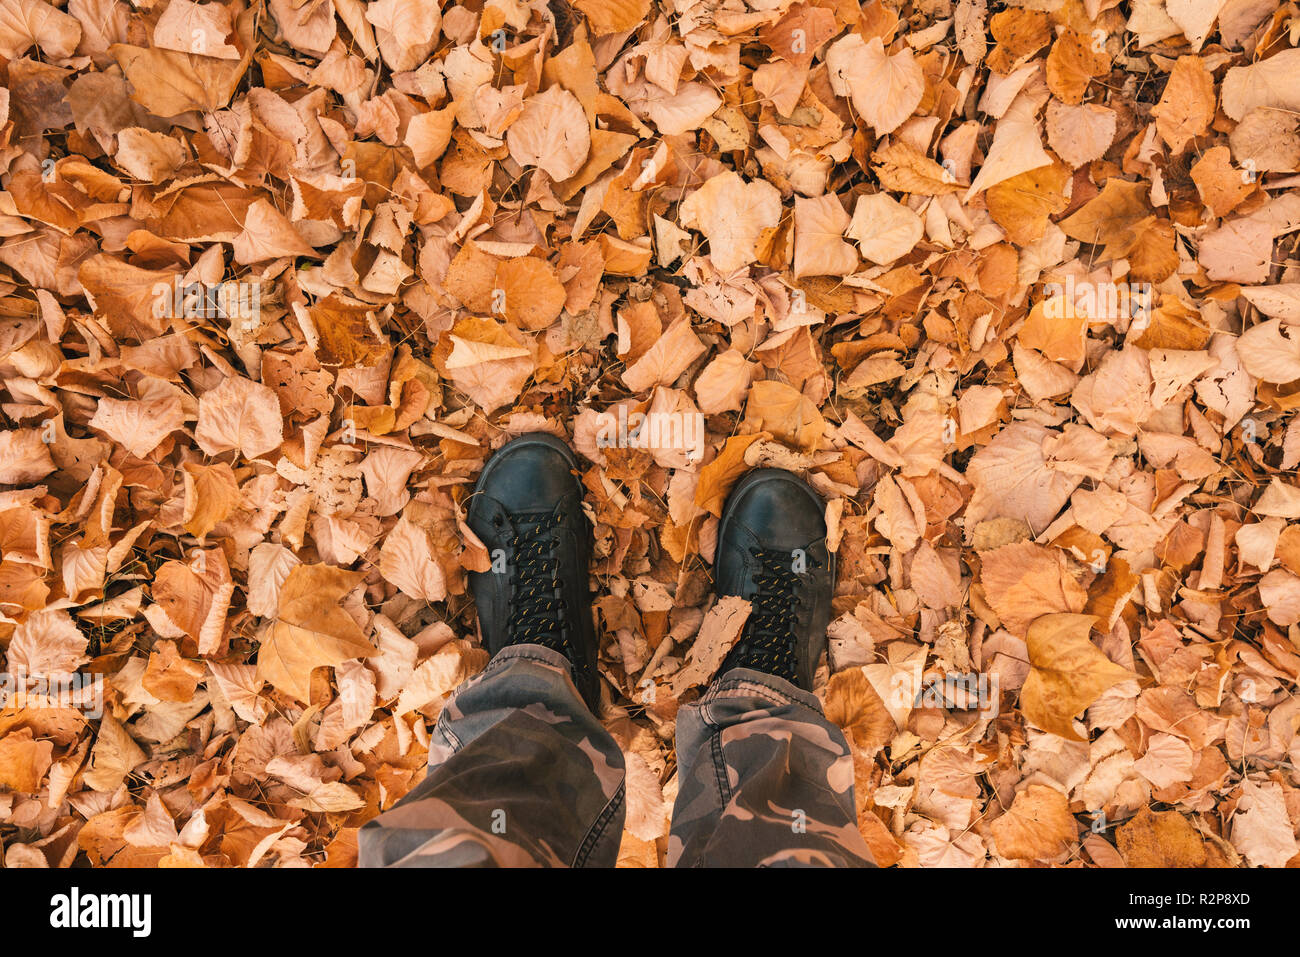 Man standing on heap of dry fallen white birch leaves on cold autumn day - Stock Image